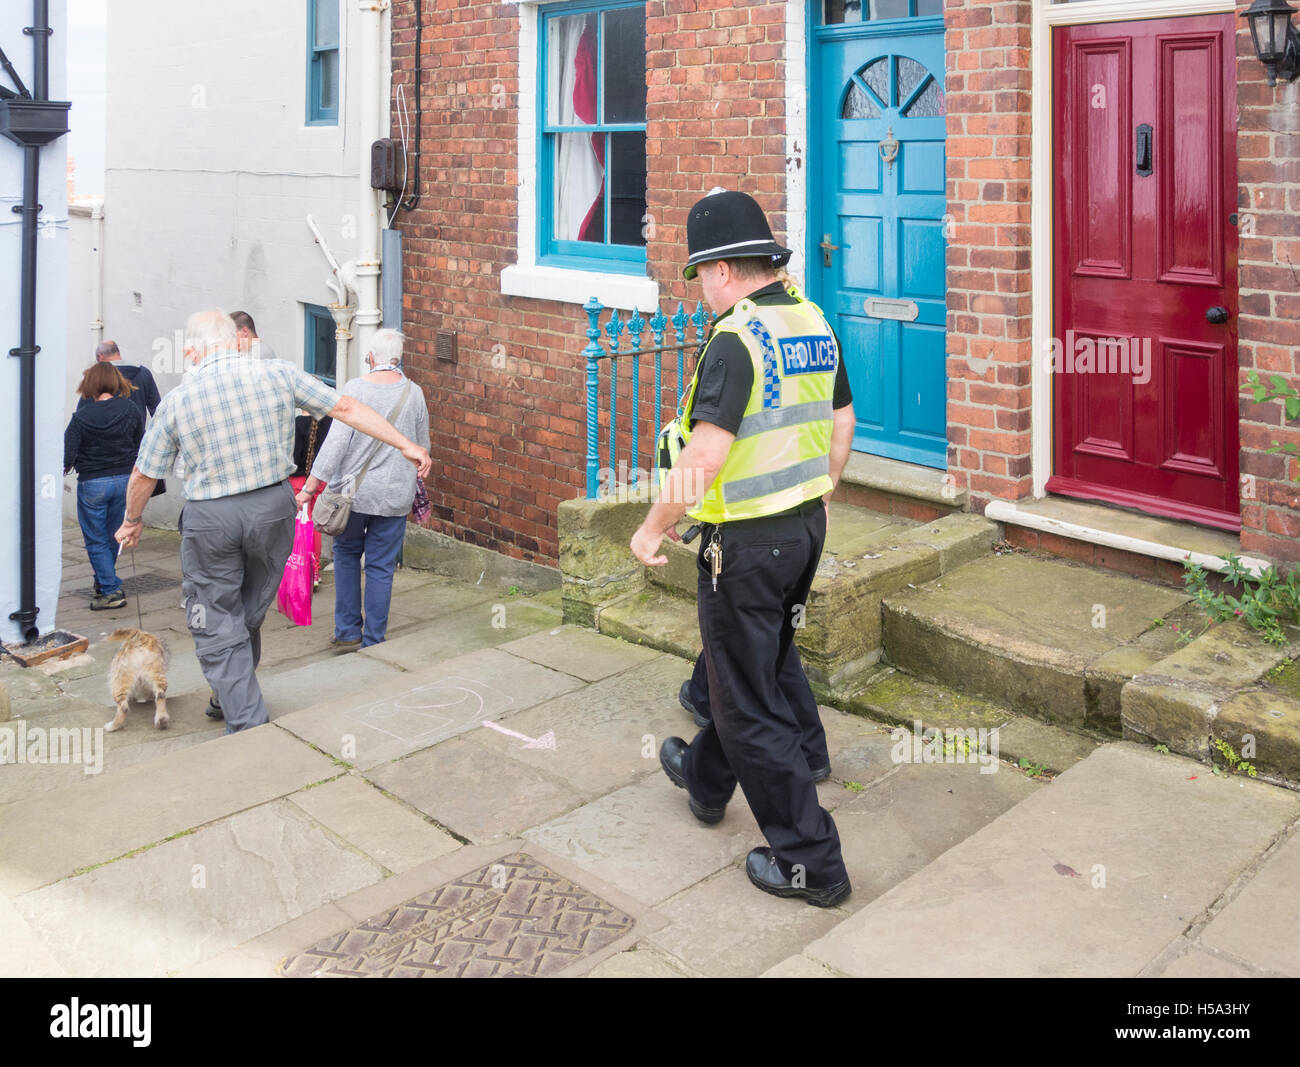 Male policeman and female police support community officer in village street in England. UK - Stock Image